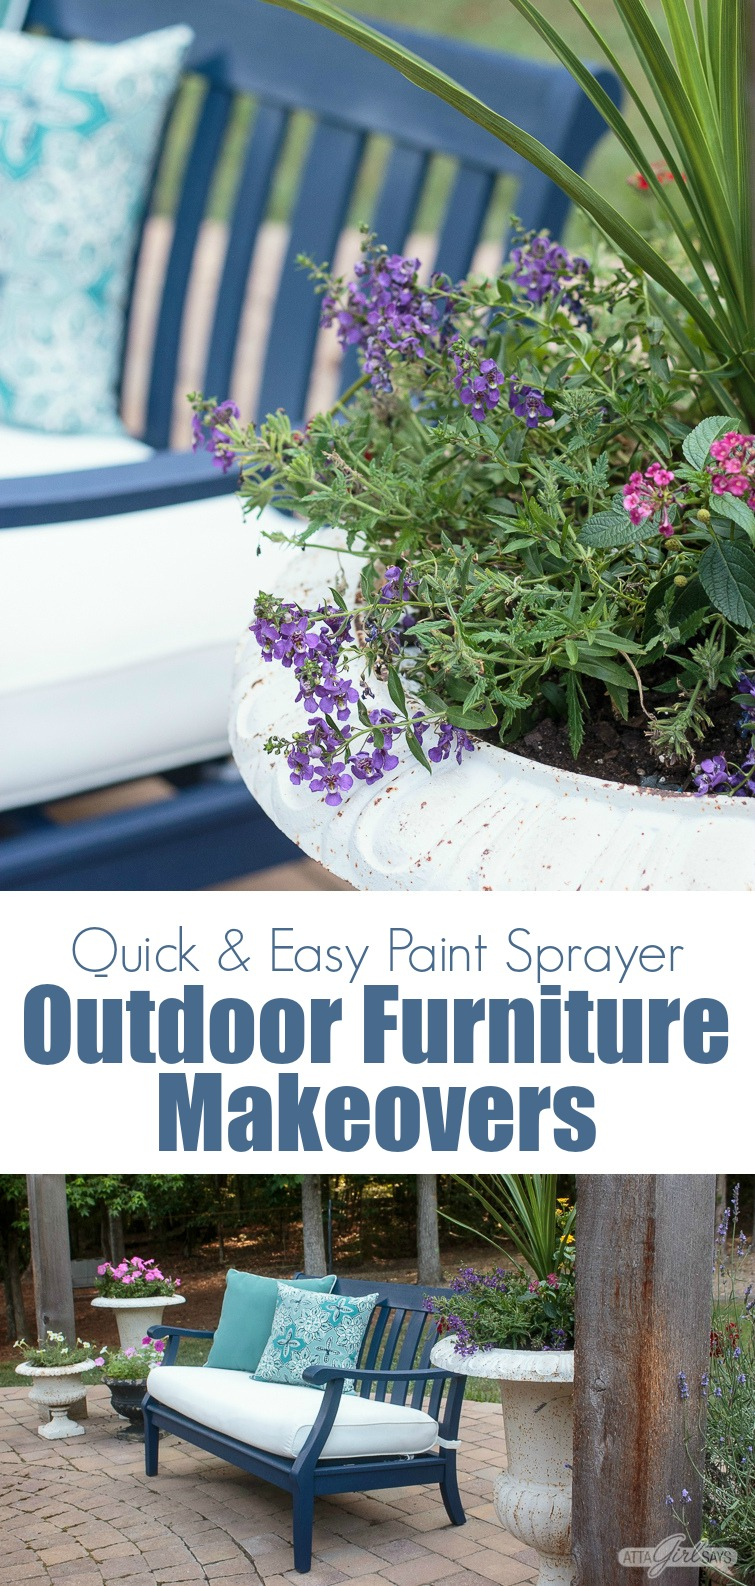 Giving your painted outdoor furniture a makeover is an easy way to refresh your patio, porch, deck and other outdoor spaces for the season. Using a paint sprayer makes the job quick and easy. You'll be so inspired when you see how we transformed worn out, weather-beaten furniture. #WagnerSprayers #paintedfurniture #outdoorfurniture #patiomakeover